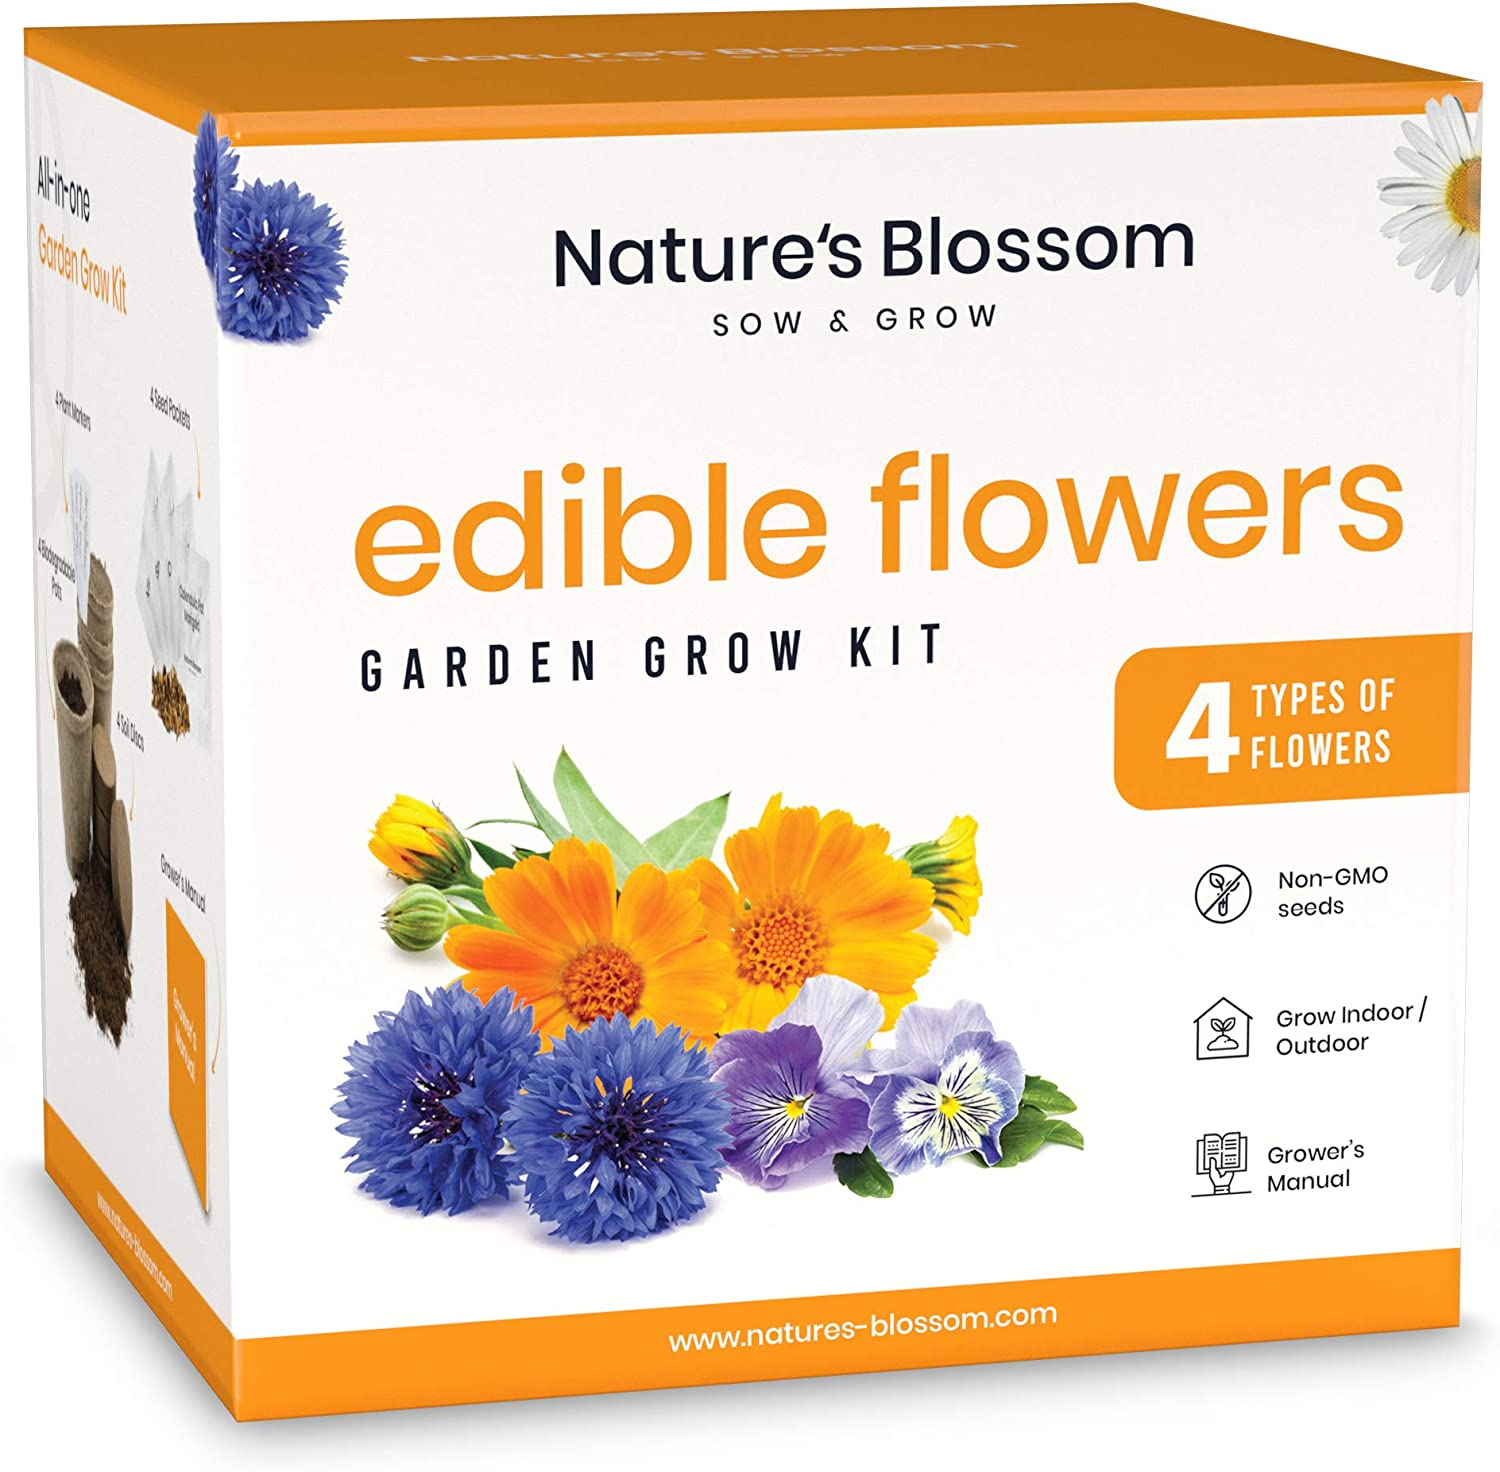 Nature's Blossom Edible Flowers Garden Kit - Complete Gardening with 4 Types of Culinary Flower Seeds, Soil, Pots, Labels, Guide. Indoor Gardening Gift Set for Men and Women.